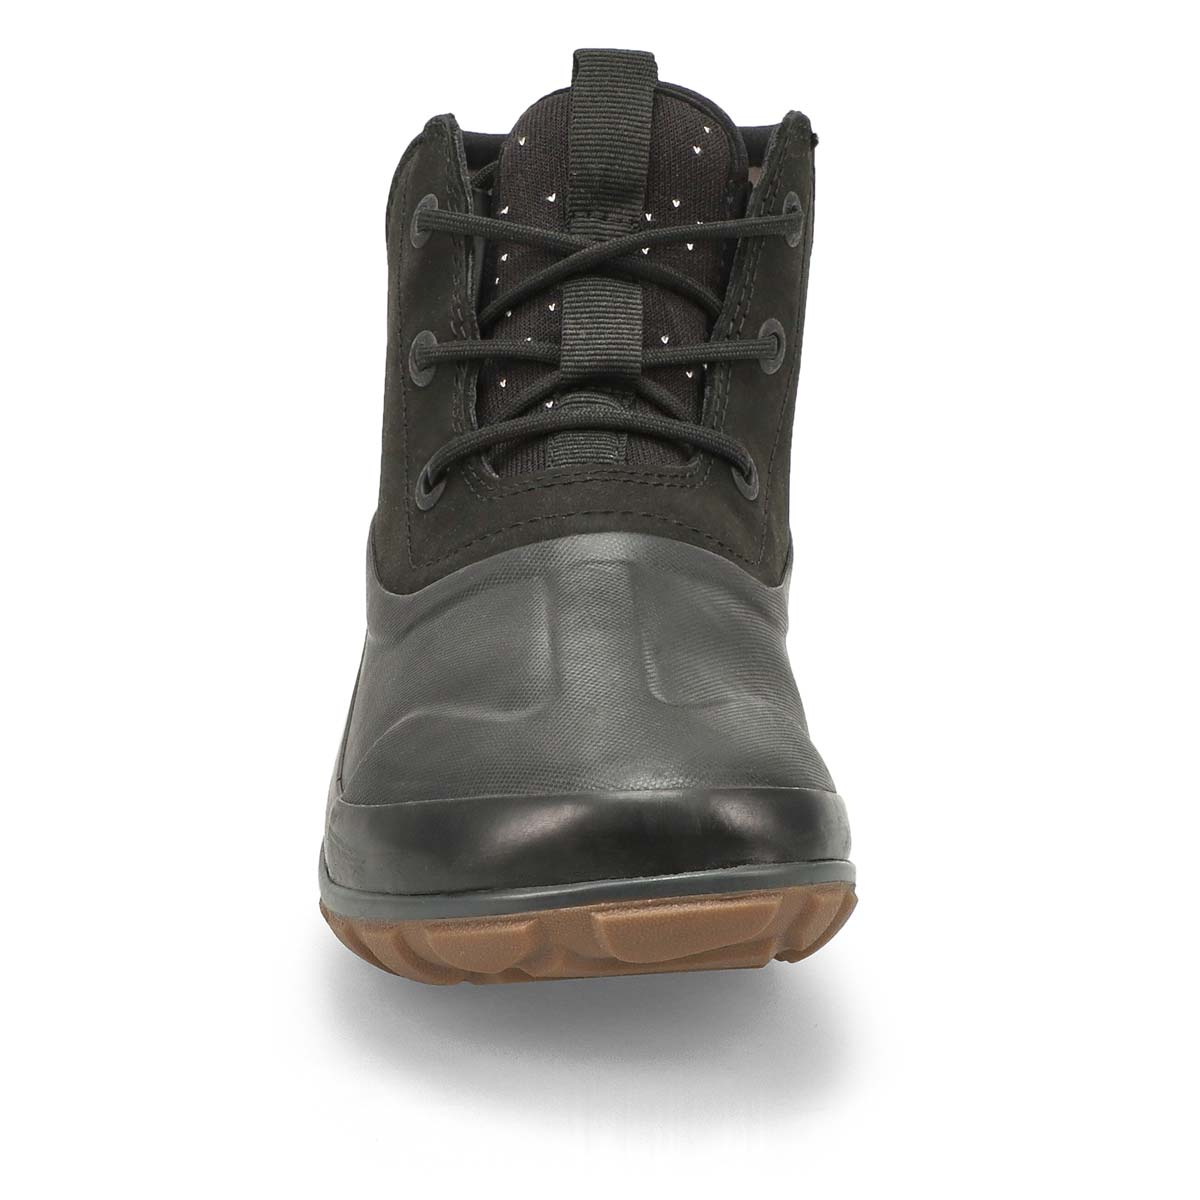 Lds Classic Casual Lace black wtpf boot